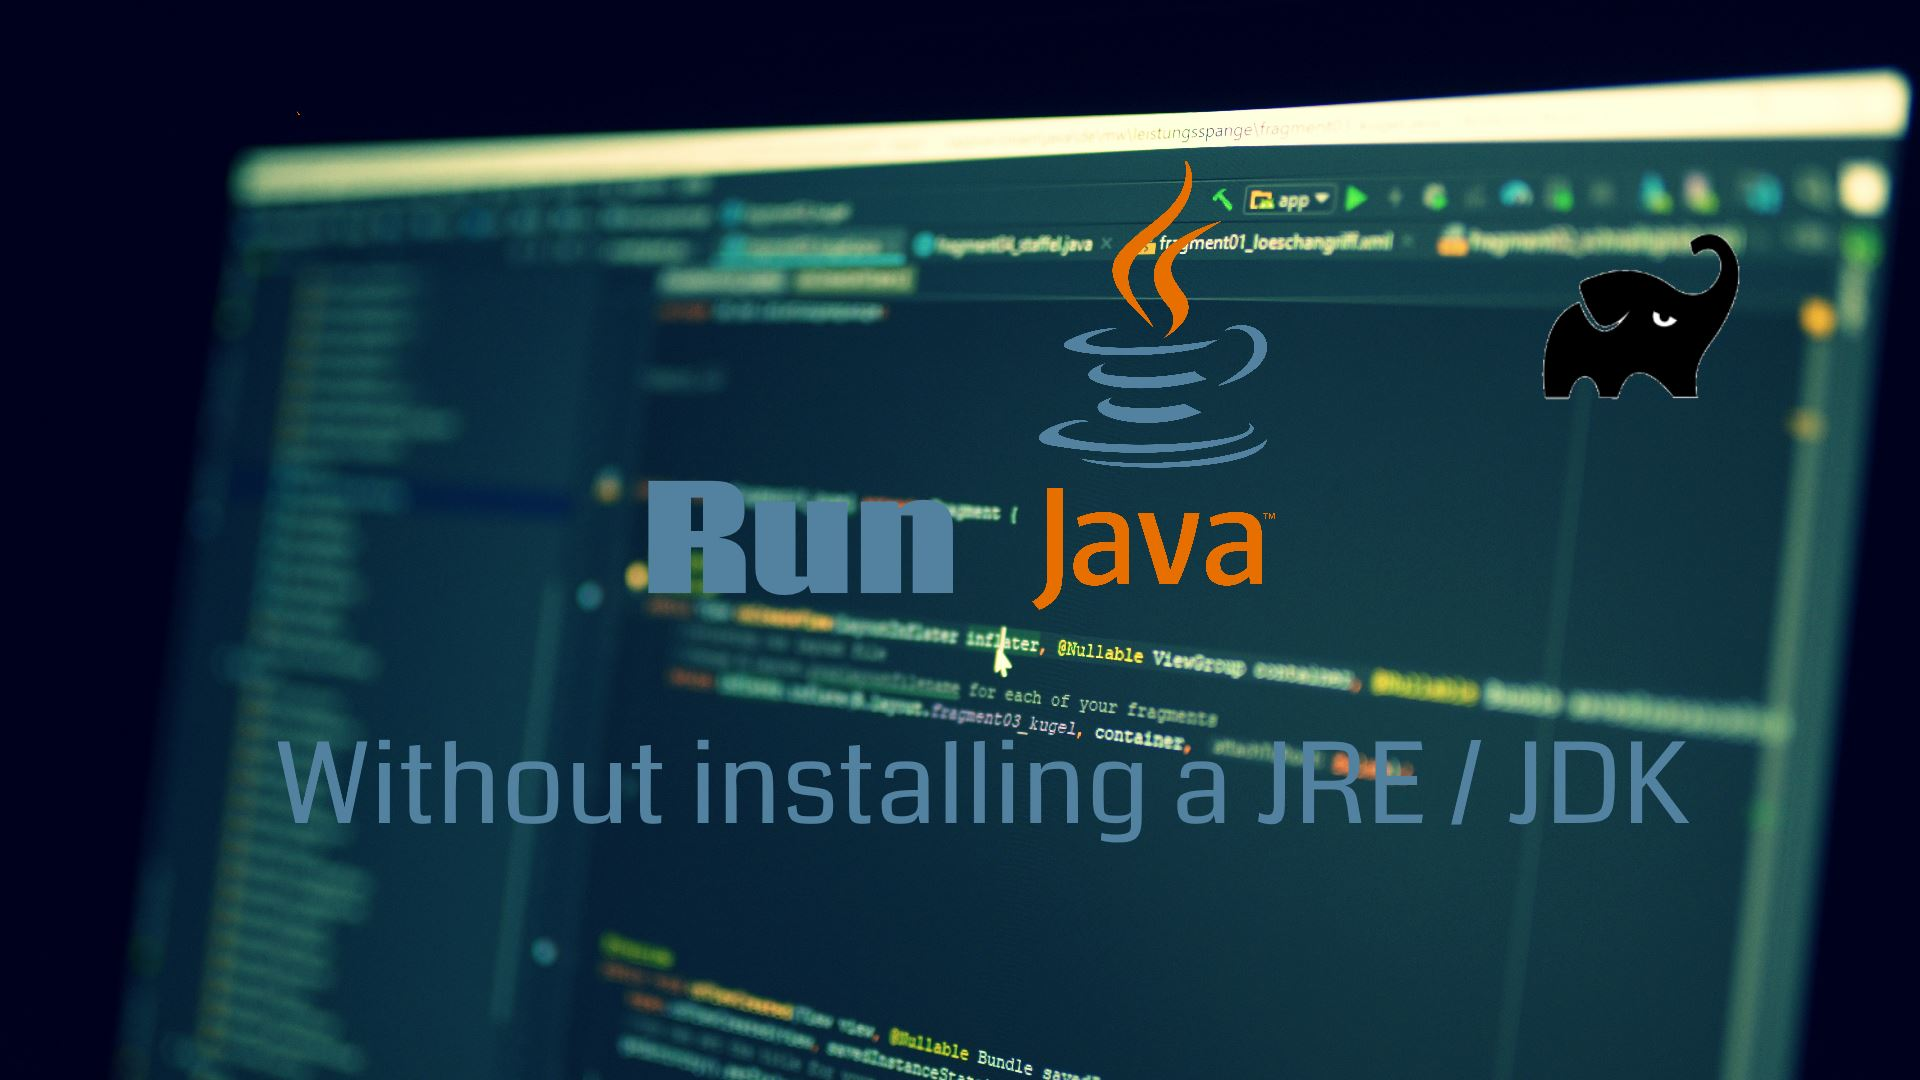 Bundle A Java 11 App Into A Minimal JRE (without Module